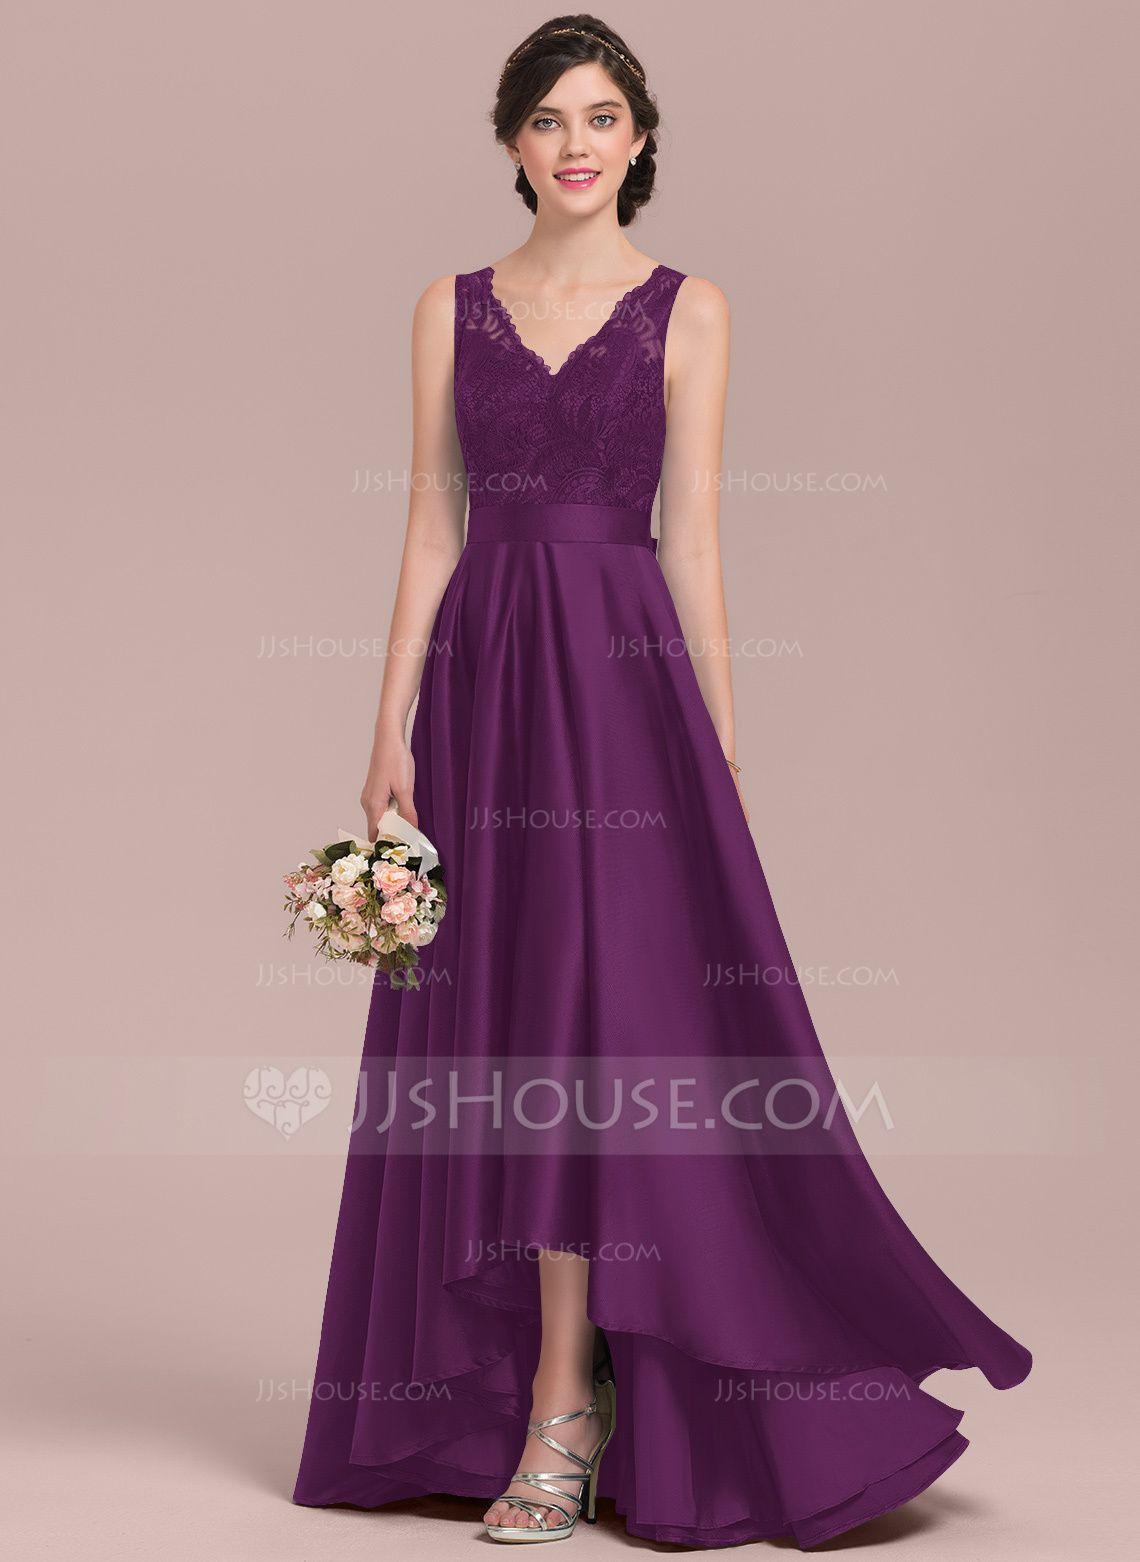 [AU$ 211.00] A-Line V-neck Asymmetrical Satin Lace Bridesmaid Dress - JJ's House #lacebridesmaids